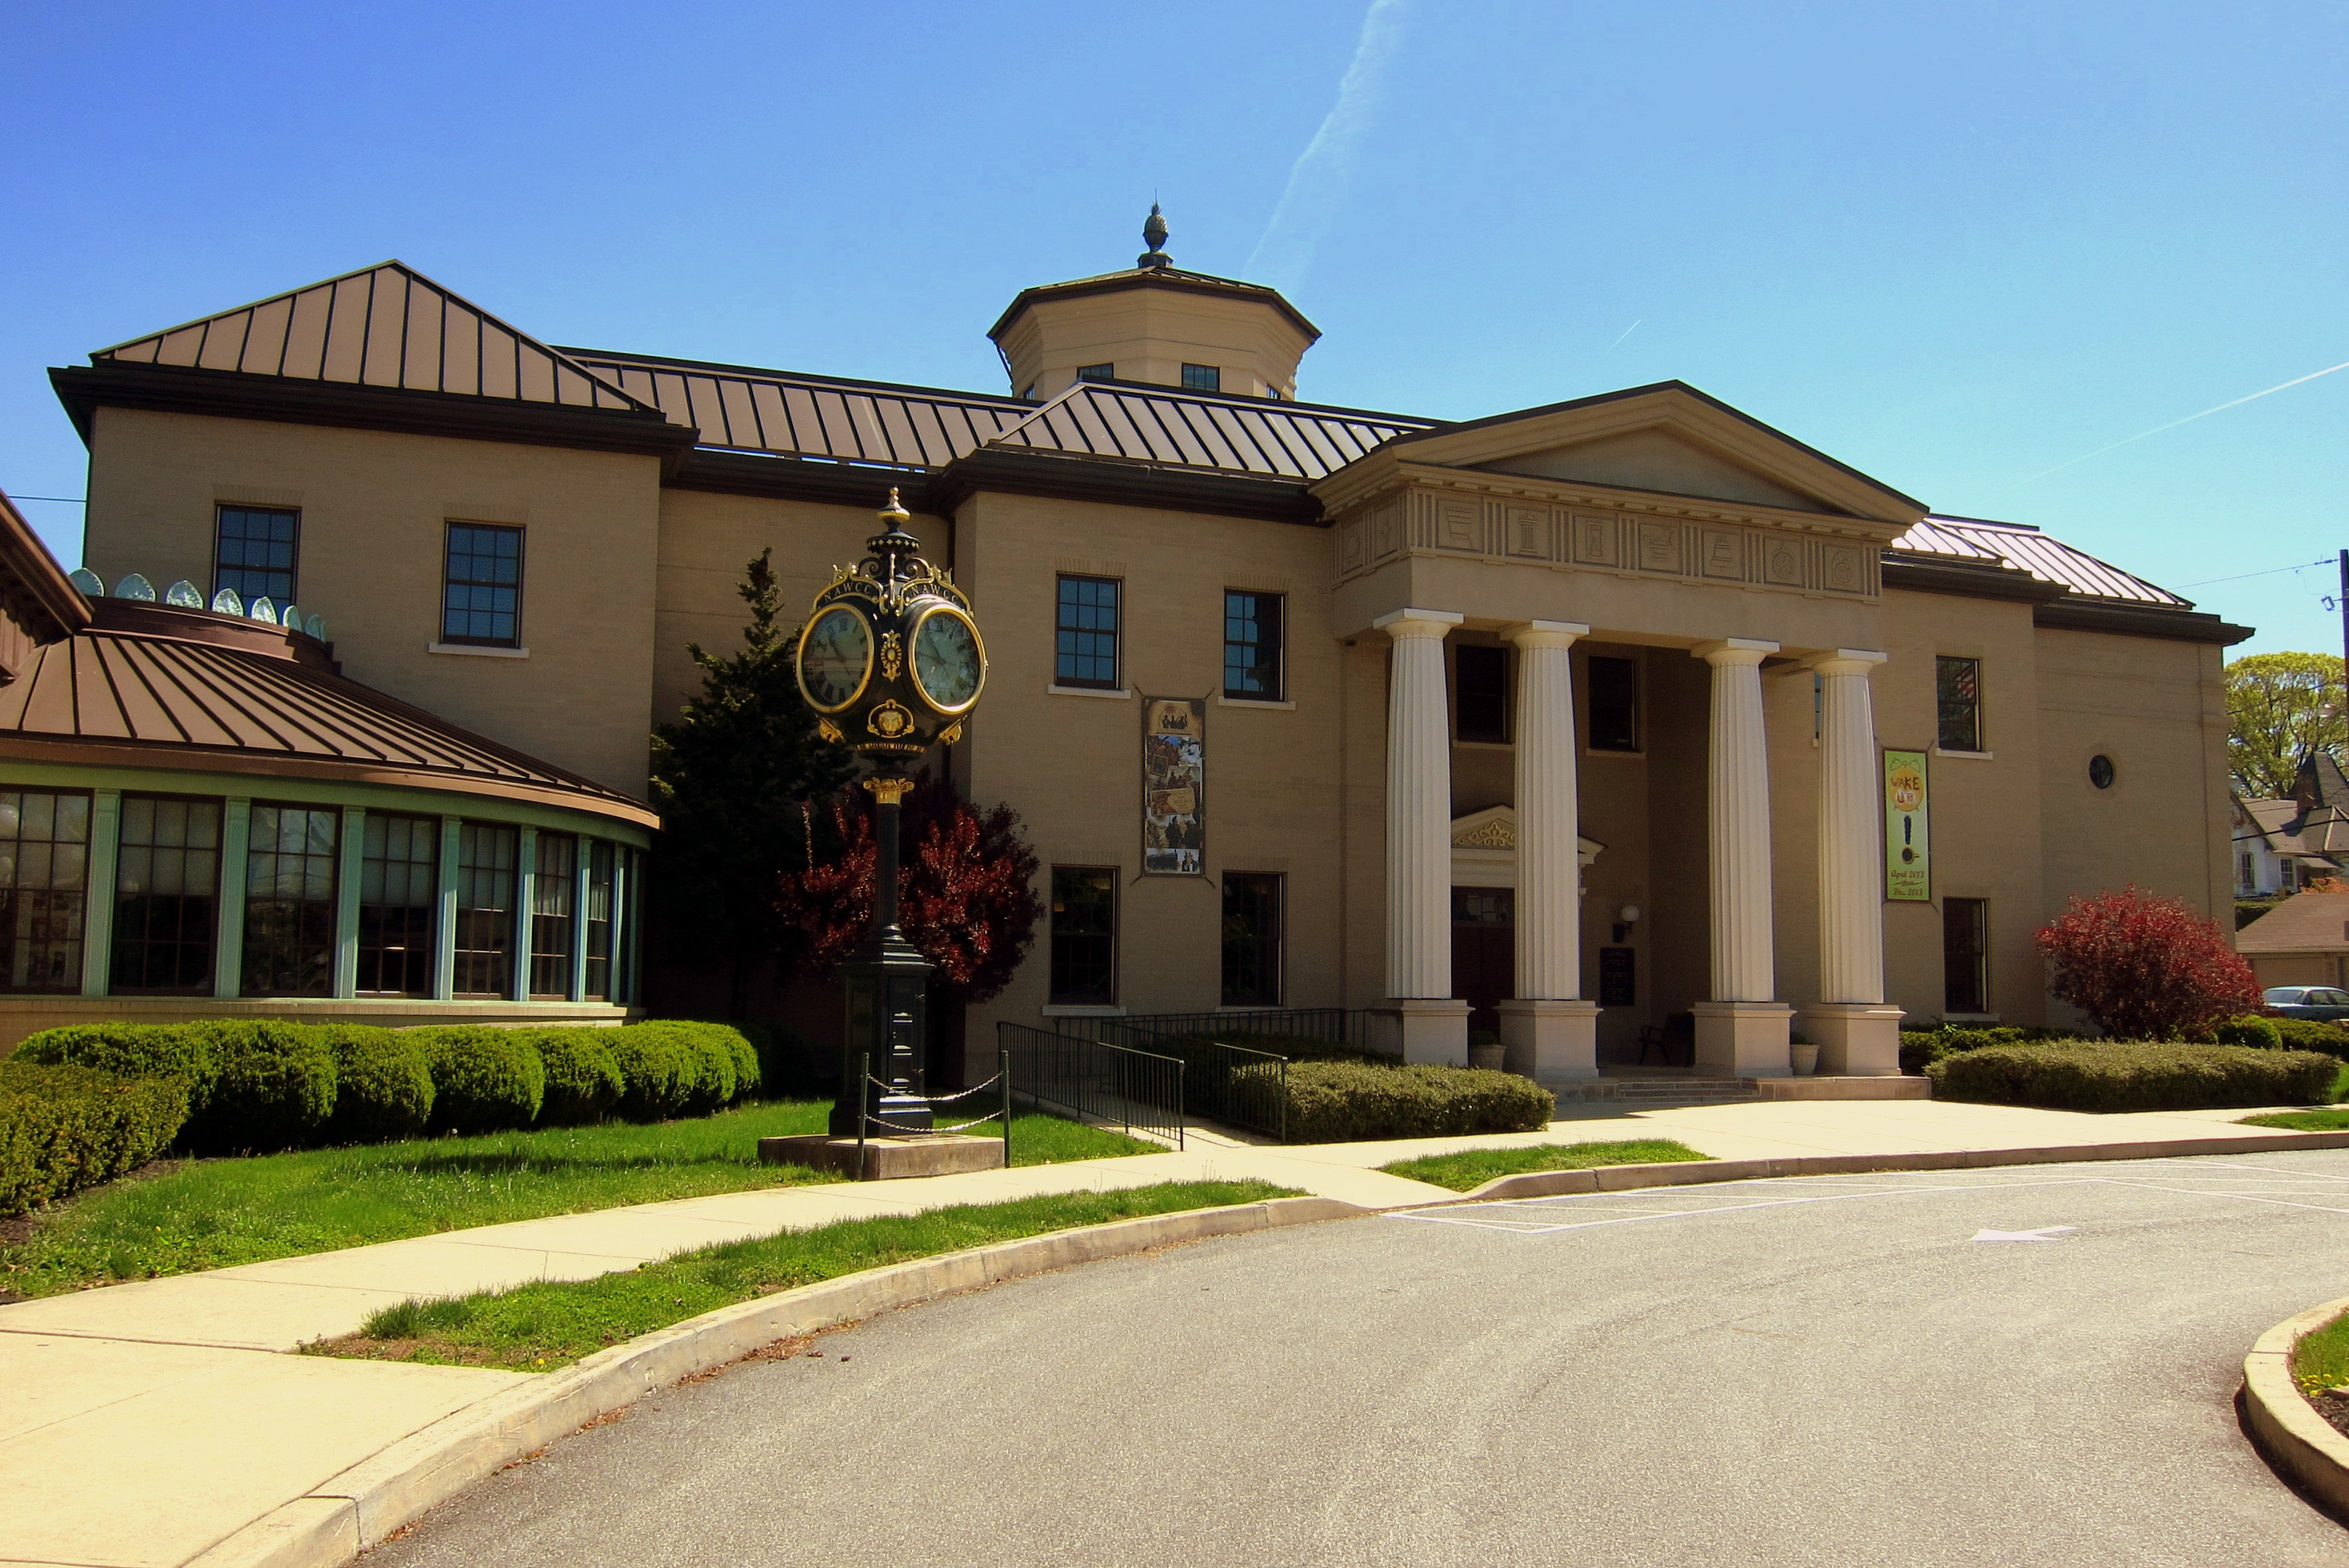 The home of the National Watch and Clock Museum since 1977.